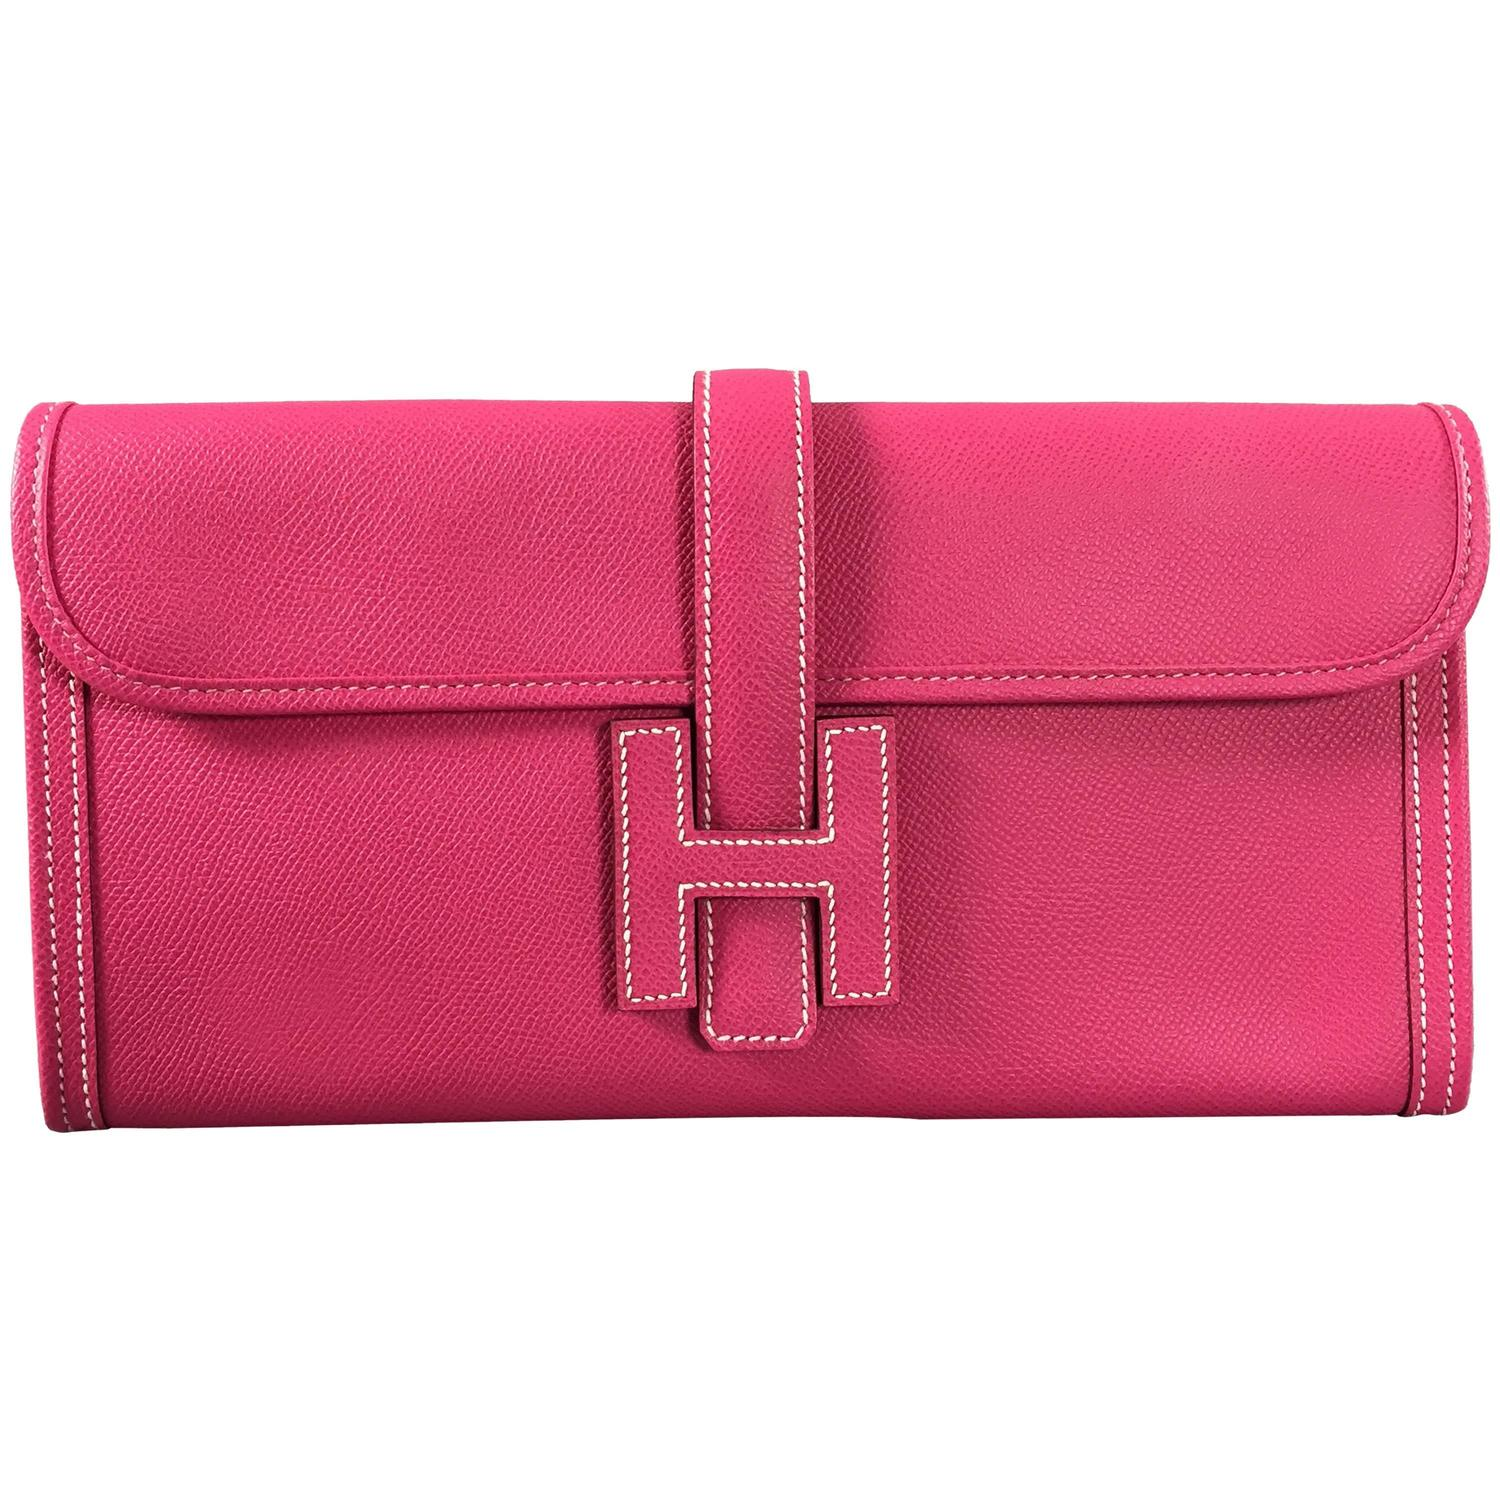 Vintage Herm¨¨s Clutches - 135 For Sale at 1stdibs